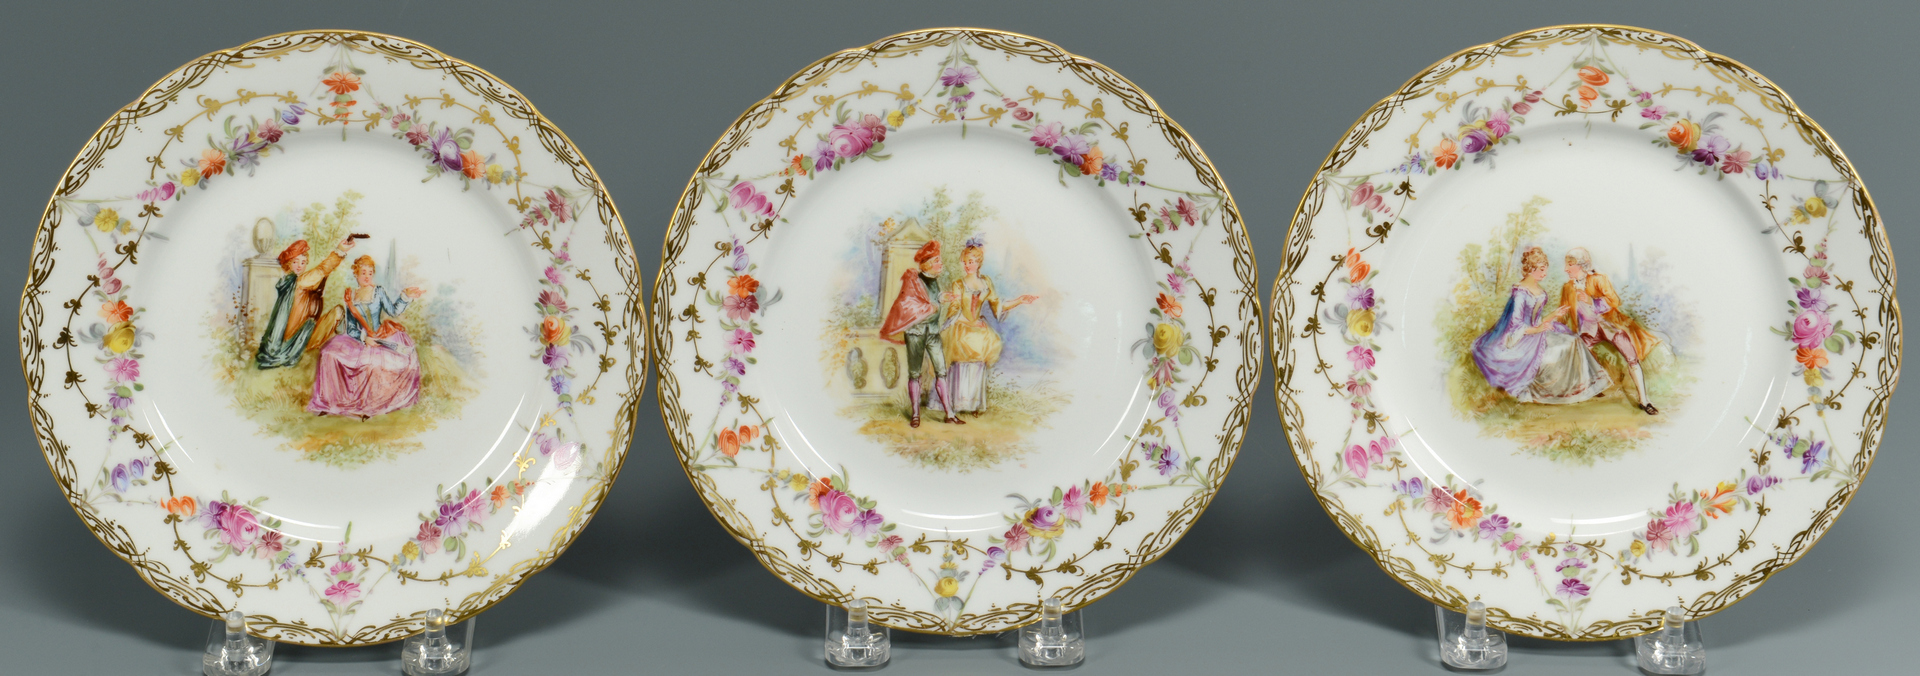 Lot 3088350: Pair European style Figurines & Plates